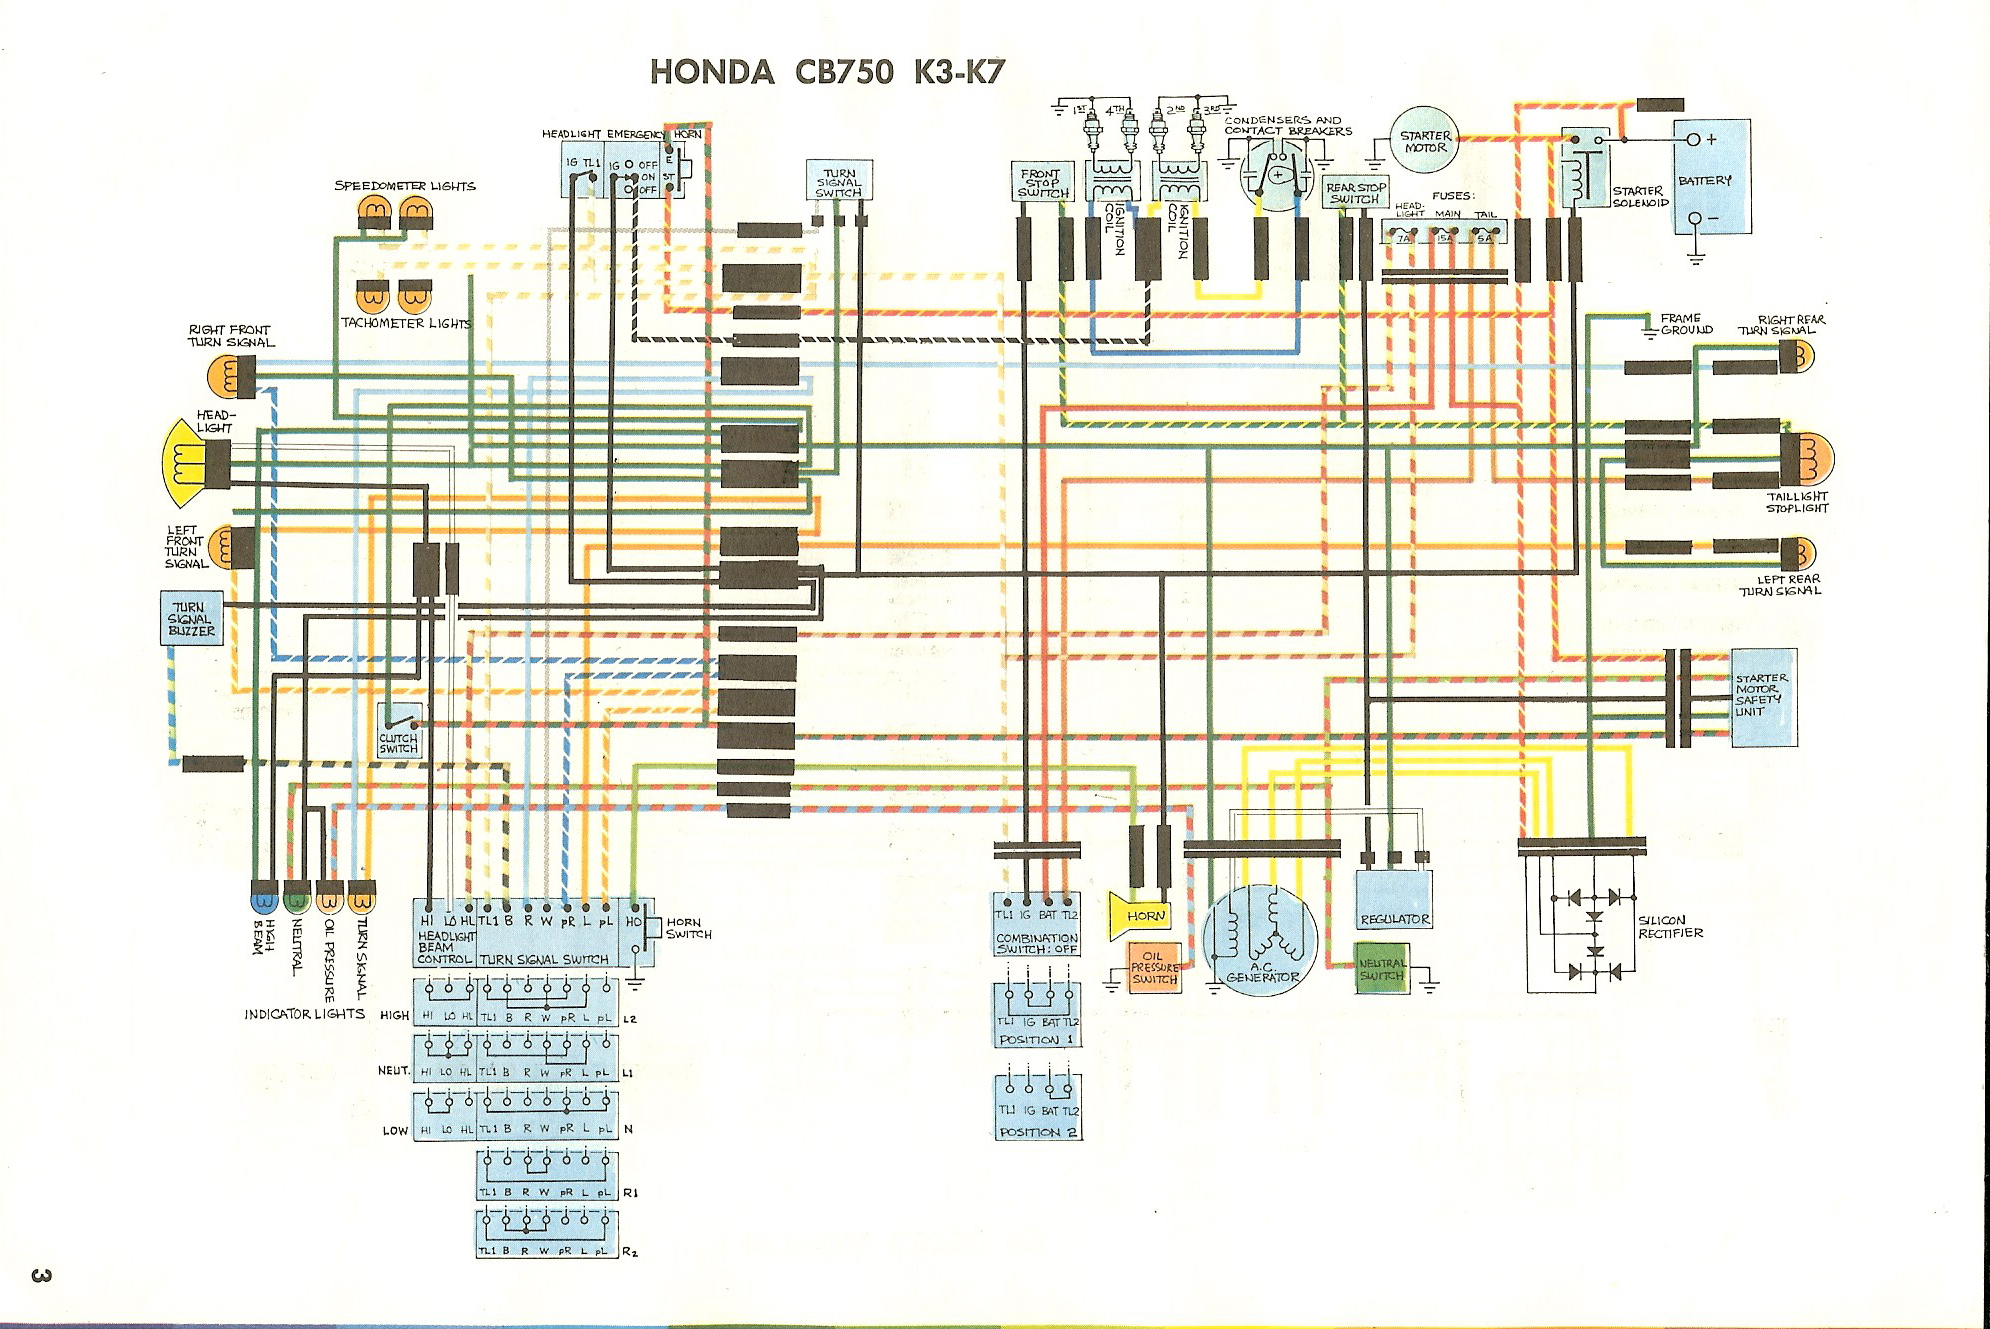 Groovy Dohc Cb750 Wire Diagram Wiring Diagram Database Wiring Cloud Eachirenstrafr09Org